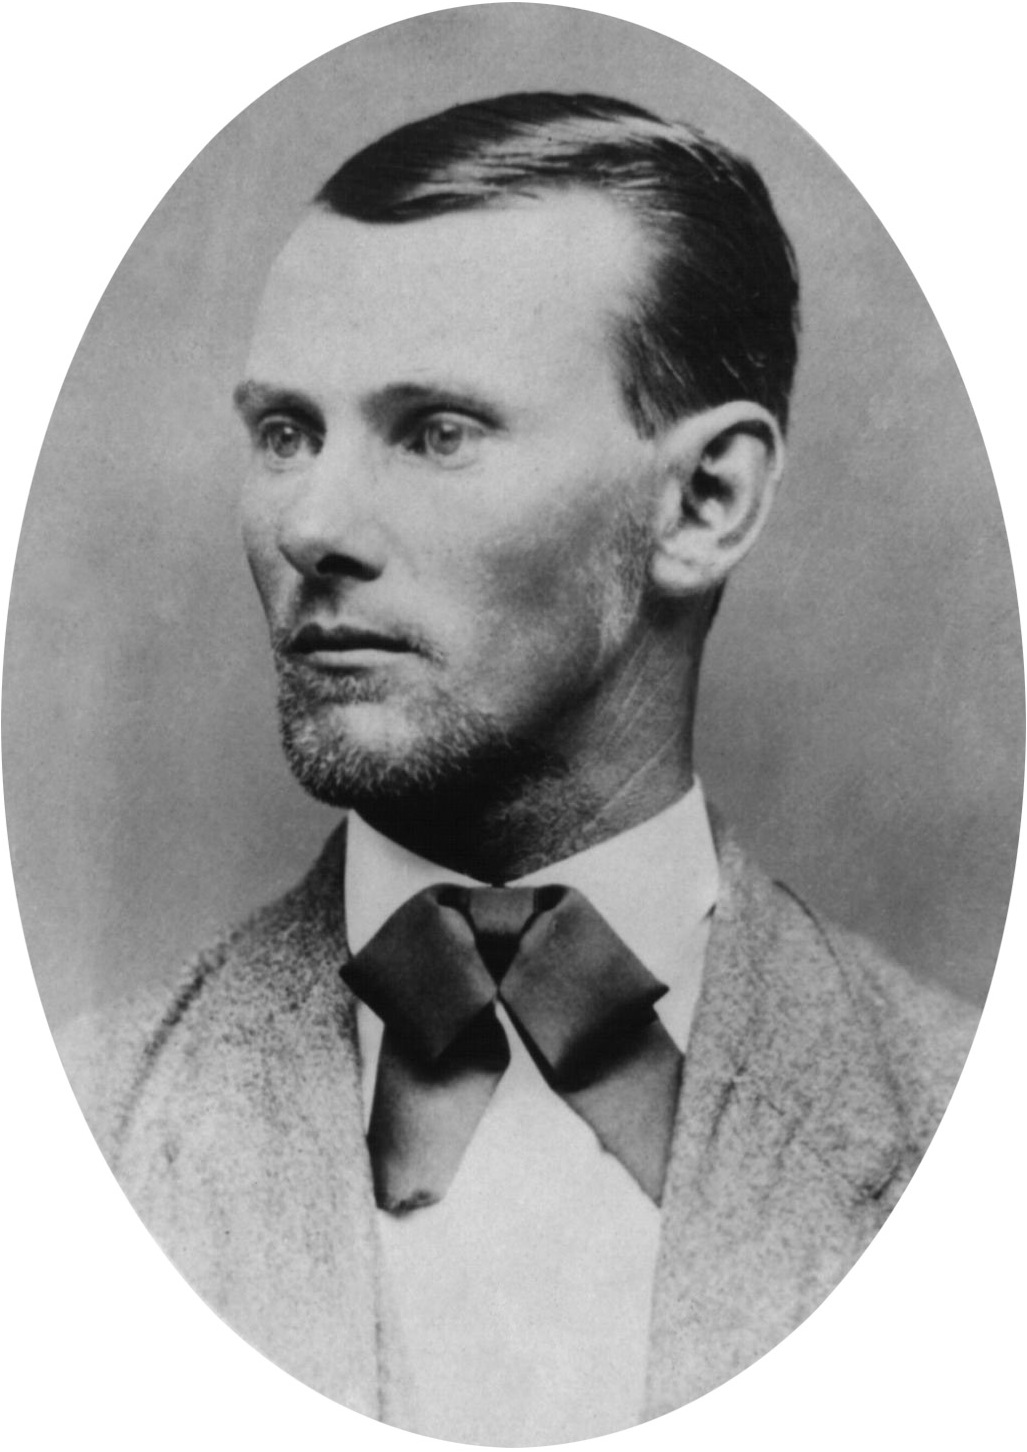 https://i0.wp.com/upload.wikimedia.org/wikipedia/commons/2/22/Jesse_james_portrait.jpg